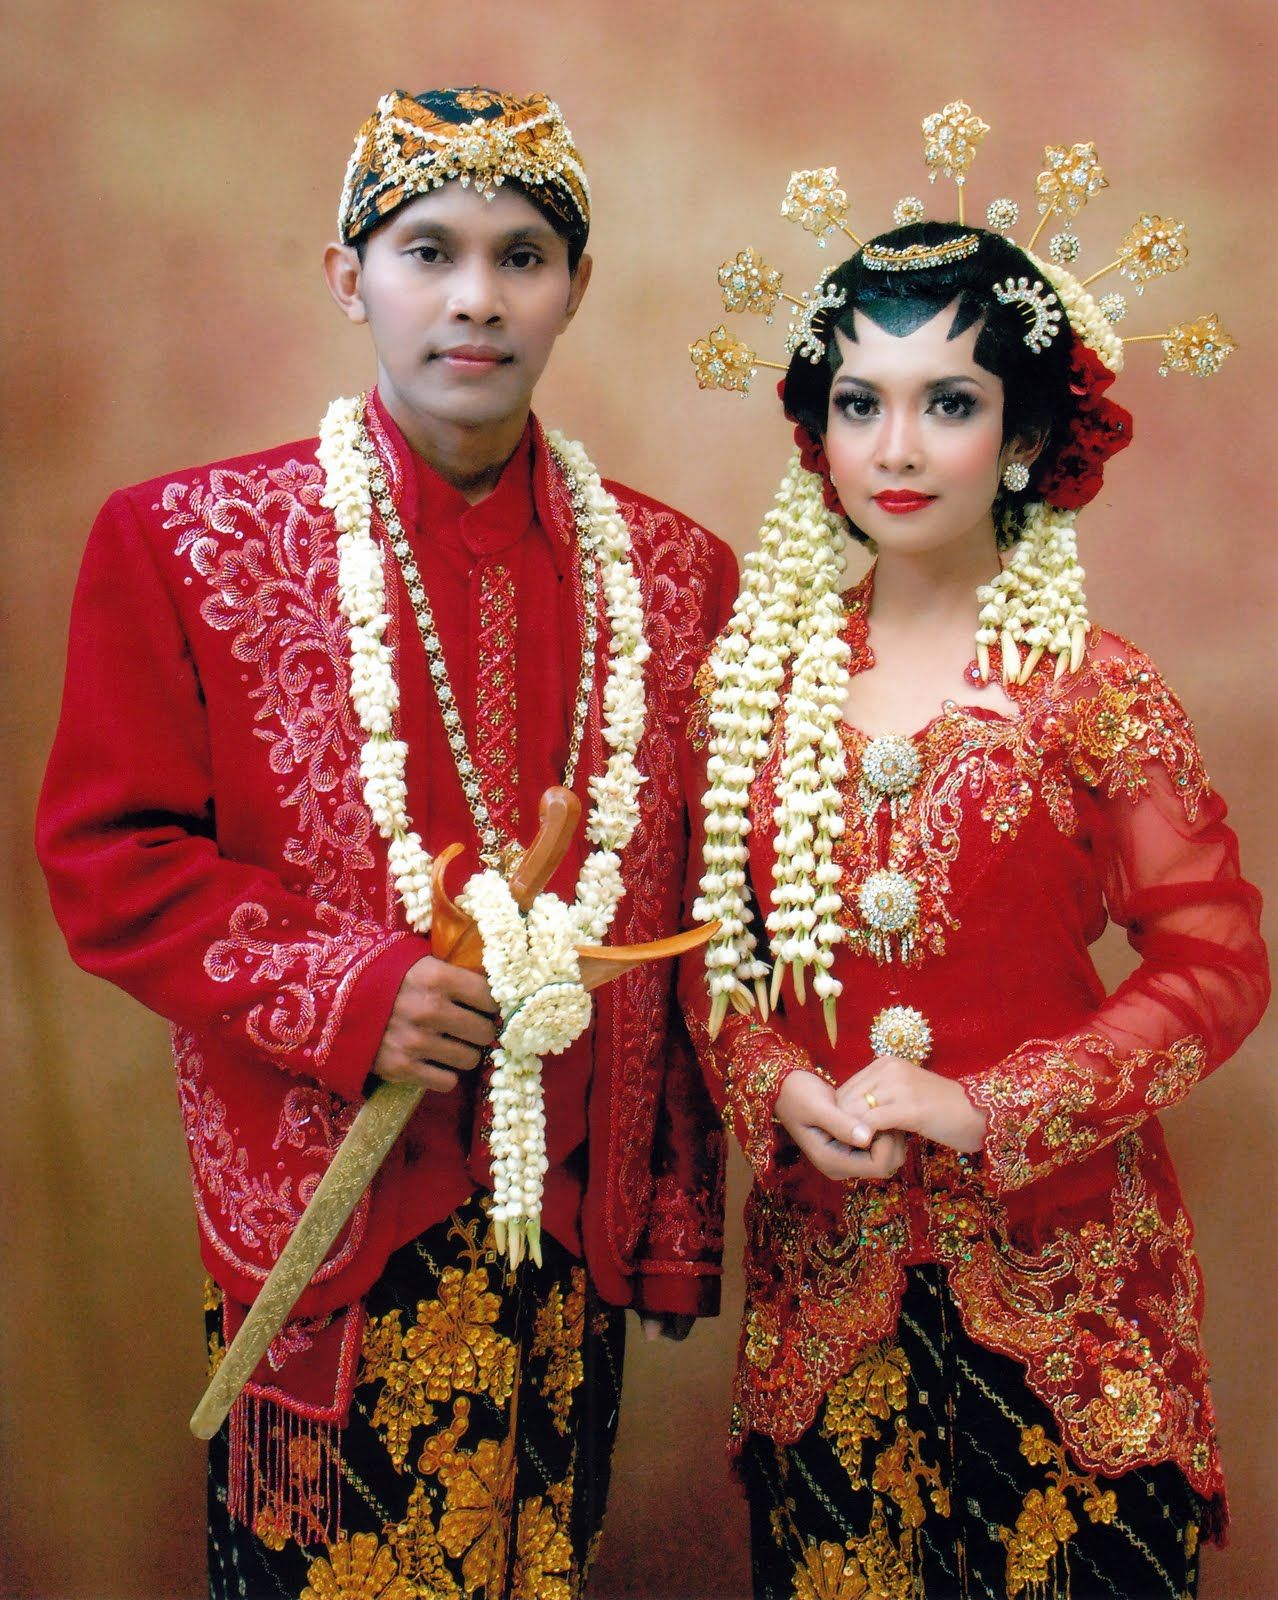 Solo Javanese(Indonesia) wedding costume  Javanese wedding